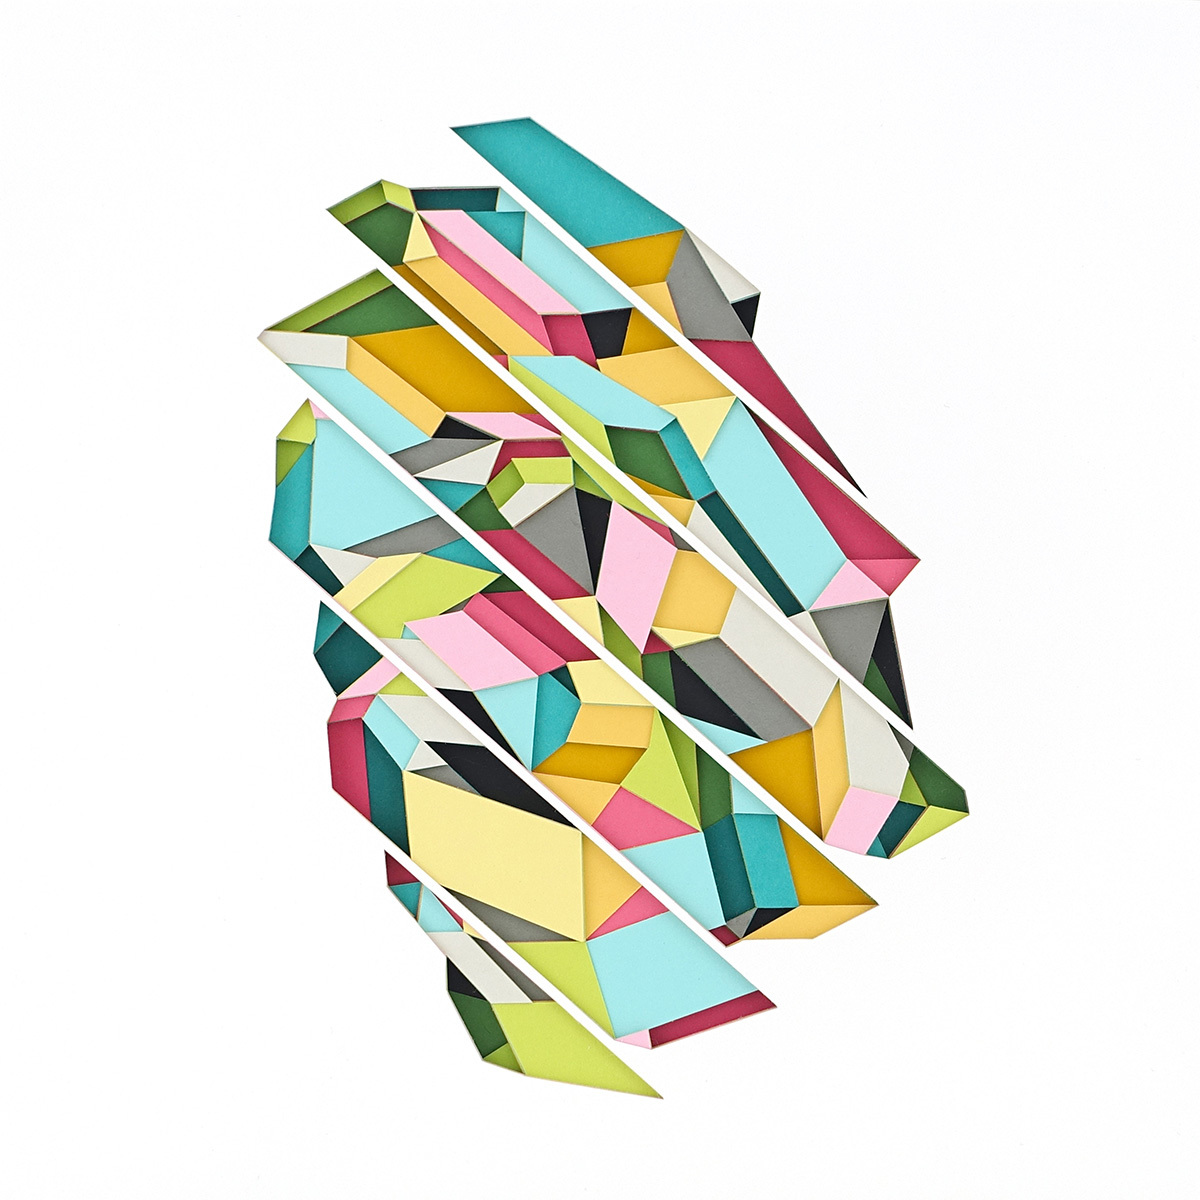 Huntz Liu Creates Geometric Paper Reliefs Reminiscent of Cut Diamonds - Downward